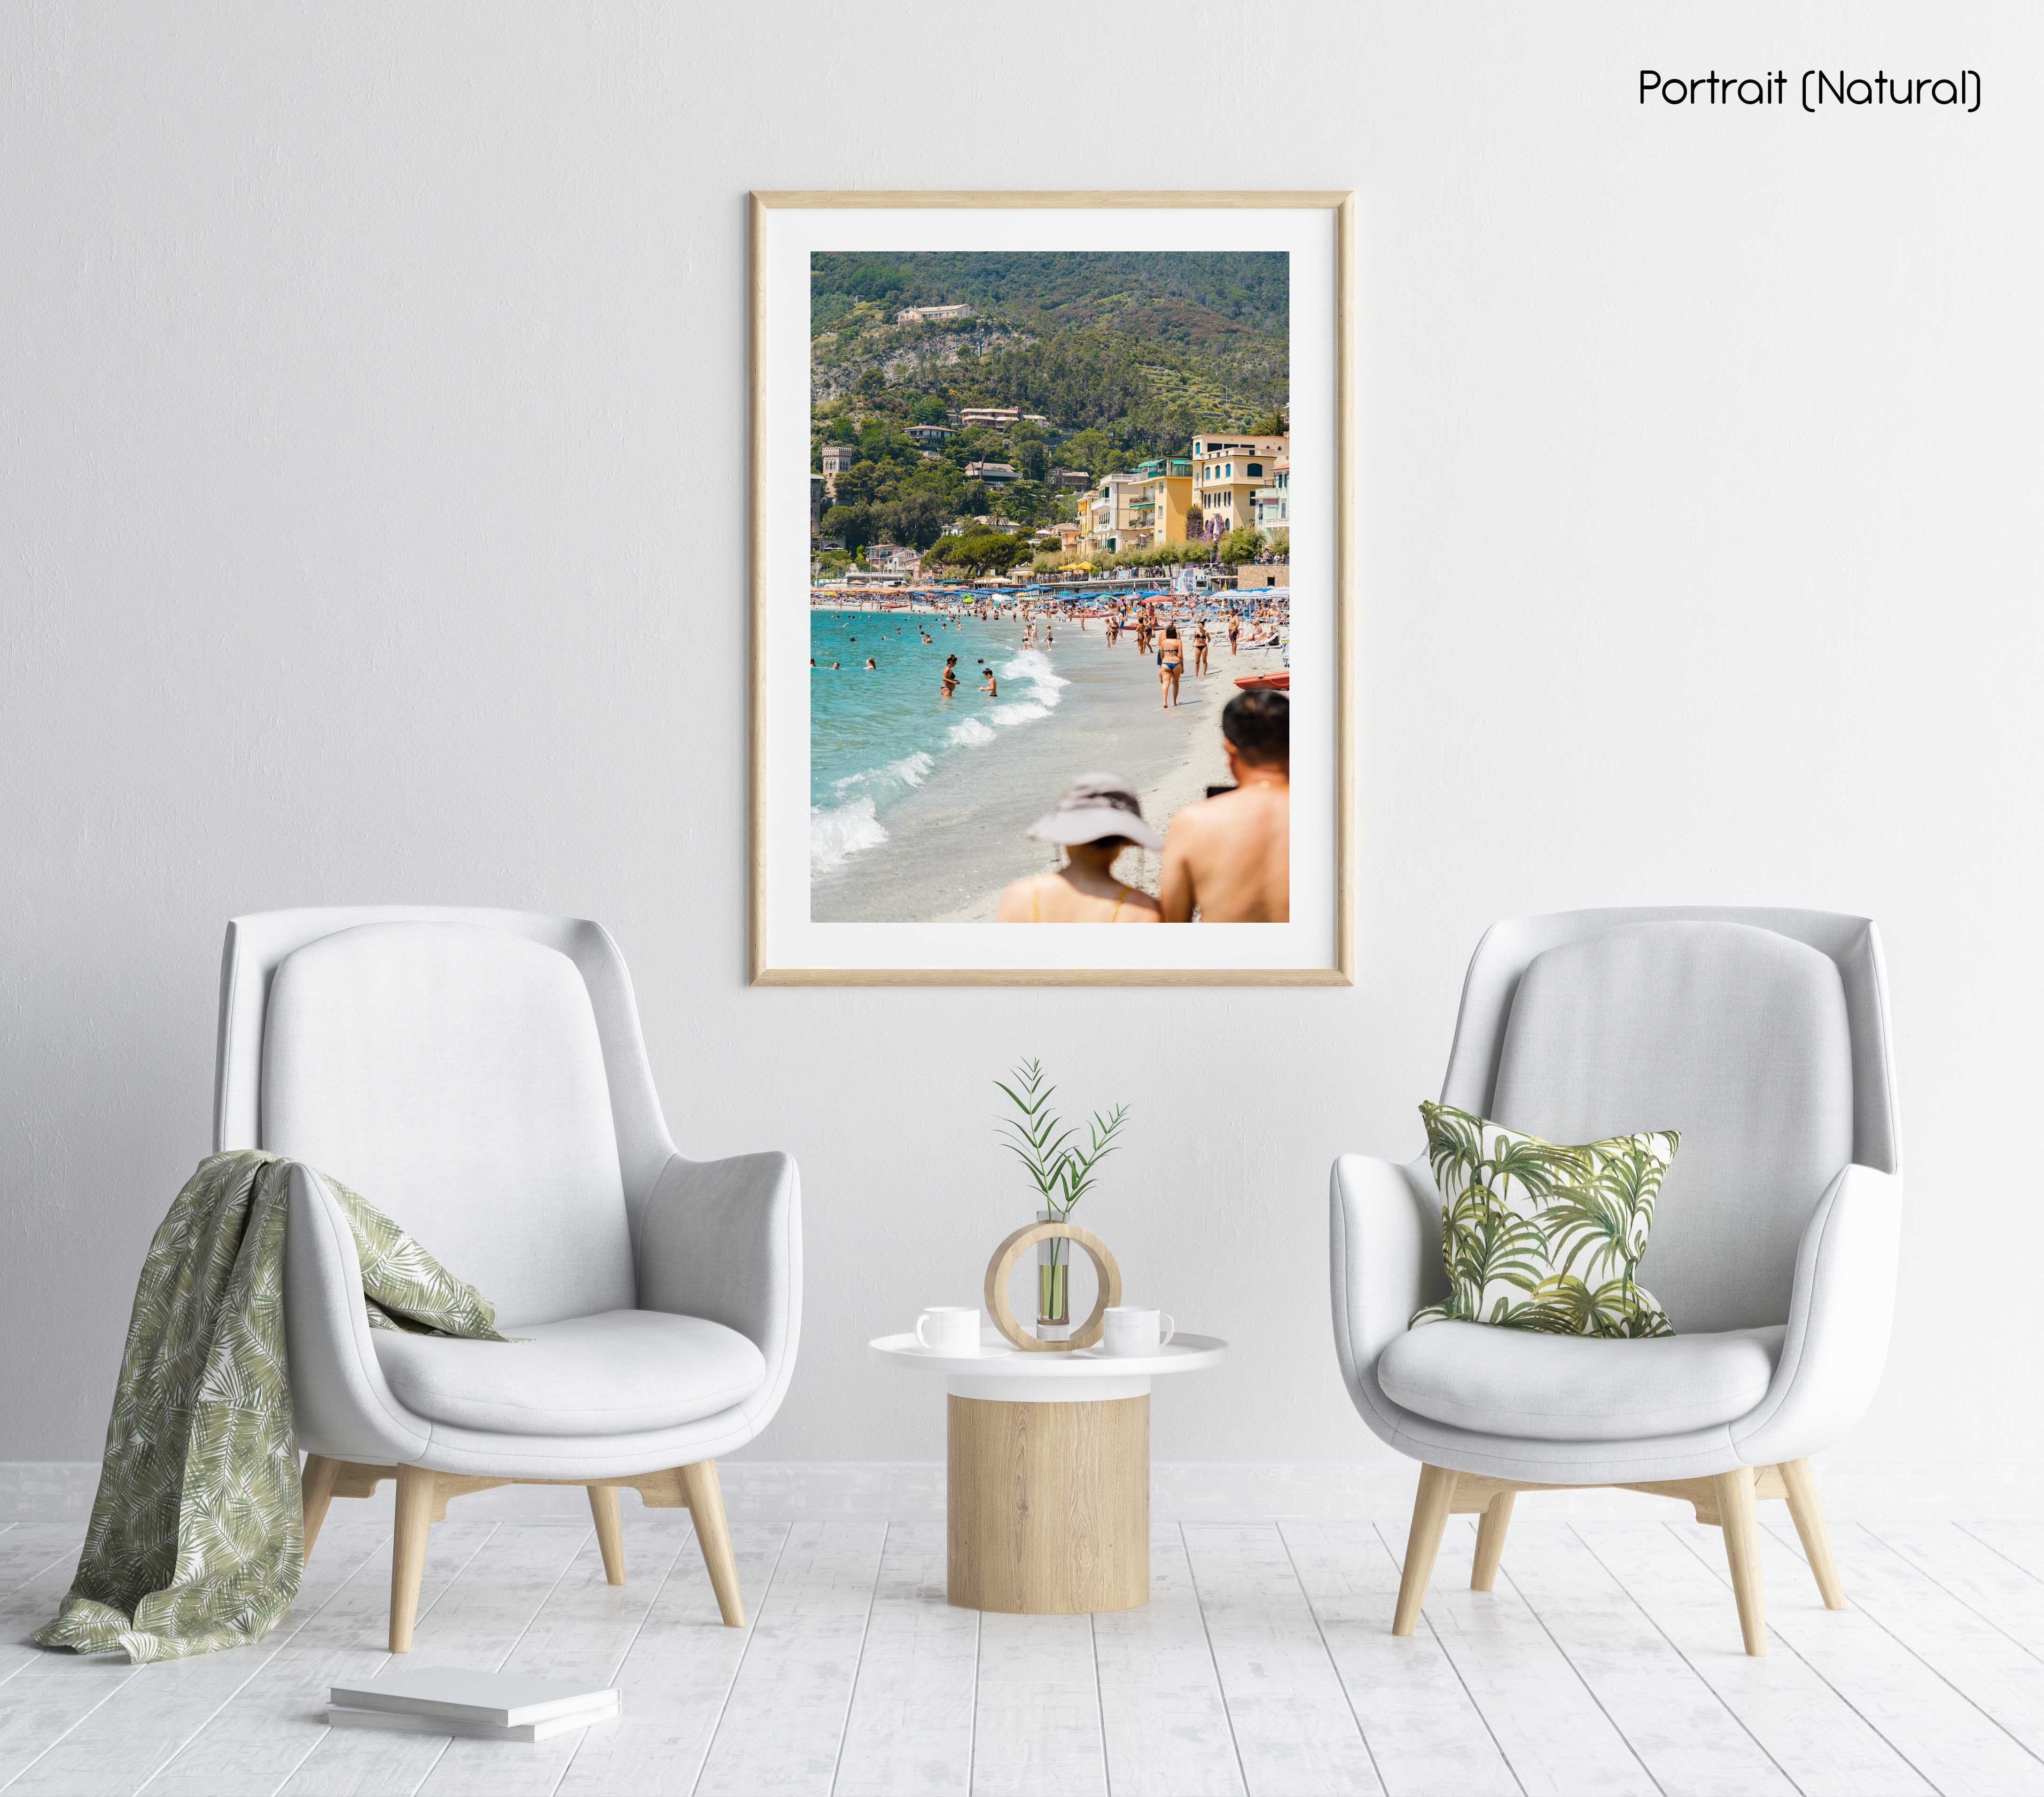 People walking and swimming in blue water of Monterosso beach in Cinque Terre in a natural fine art frame